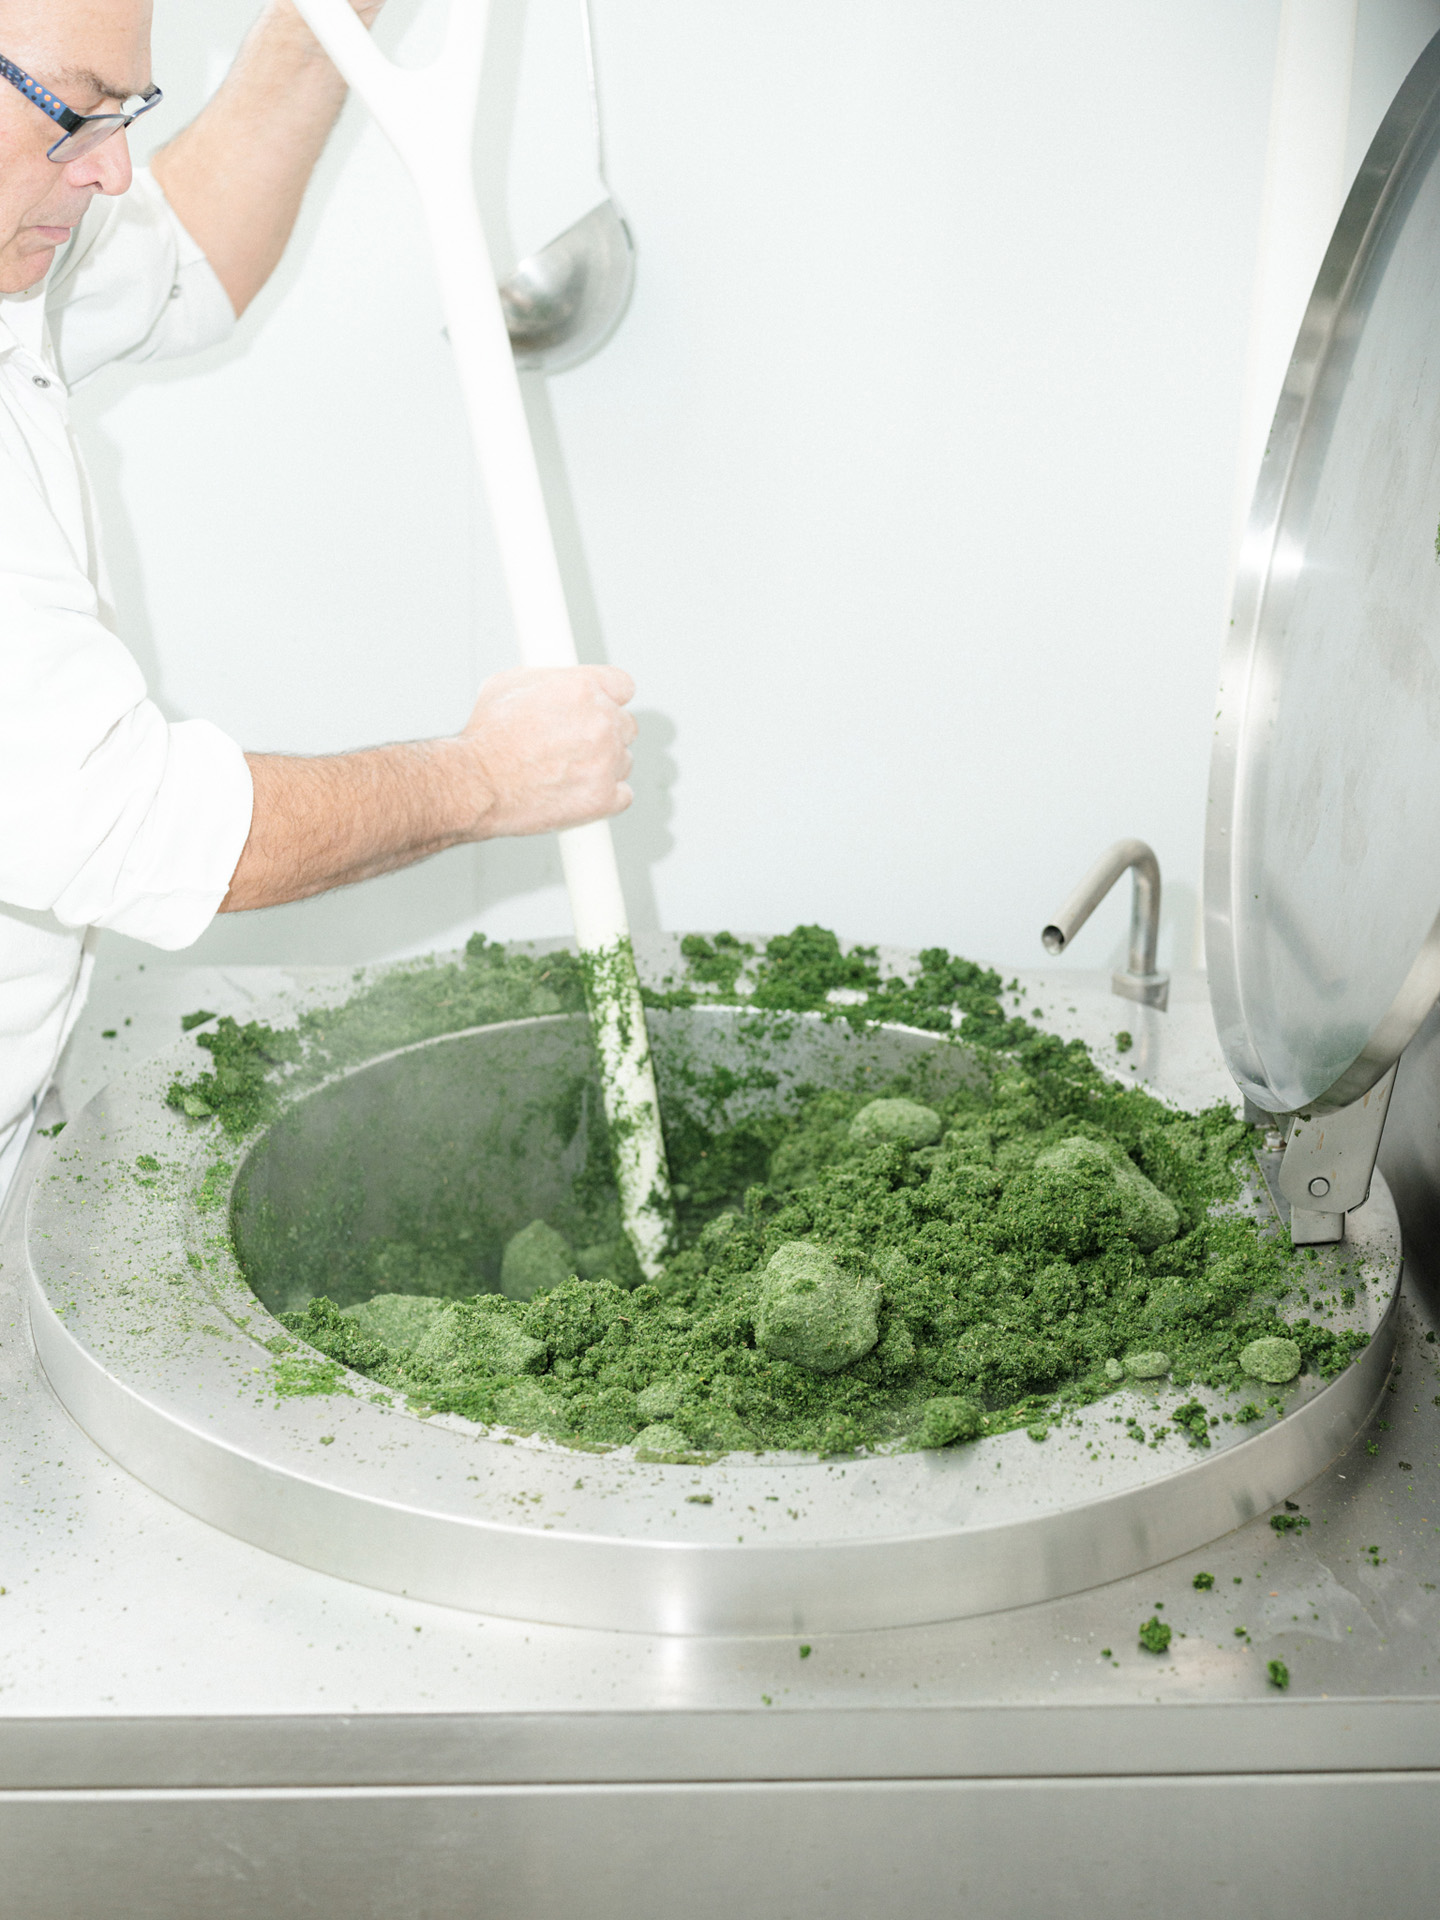 worker mixing green spinach powder in machine by Alexi Hobbs in Auvergne for Reflets de France